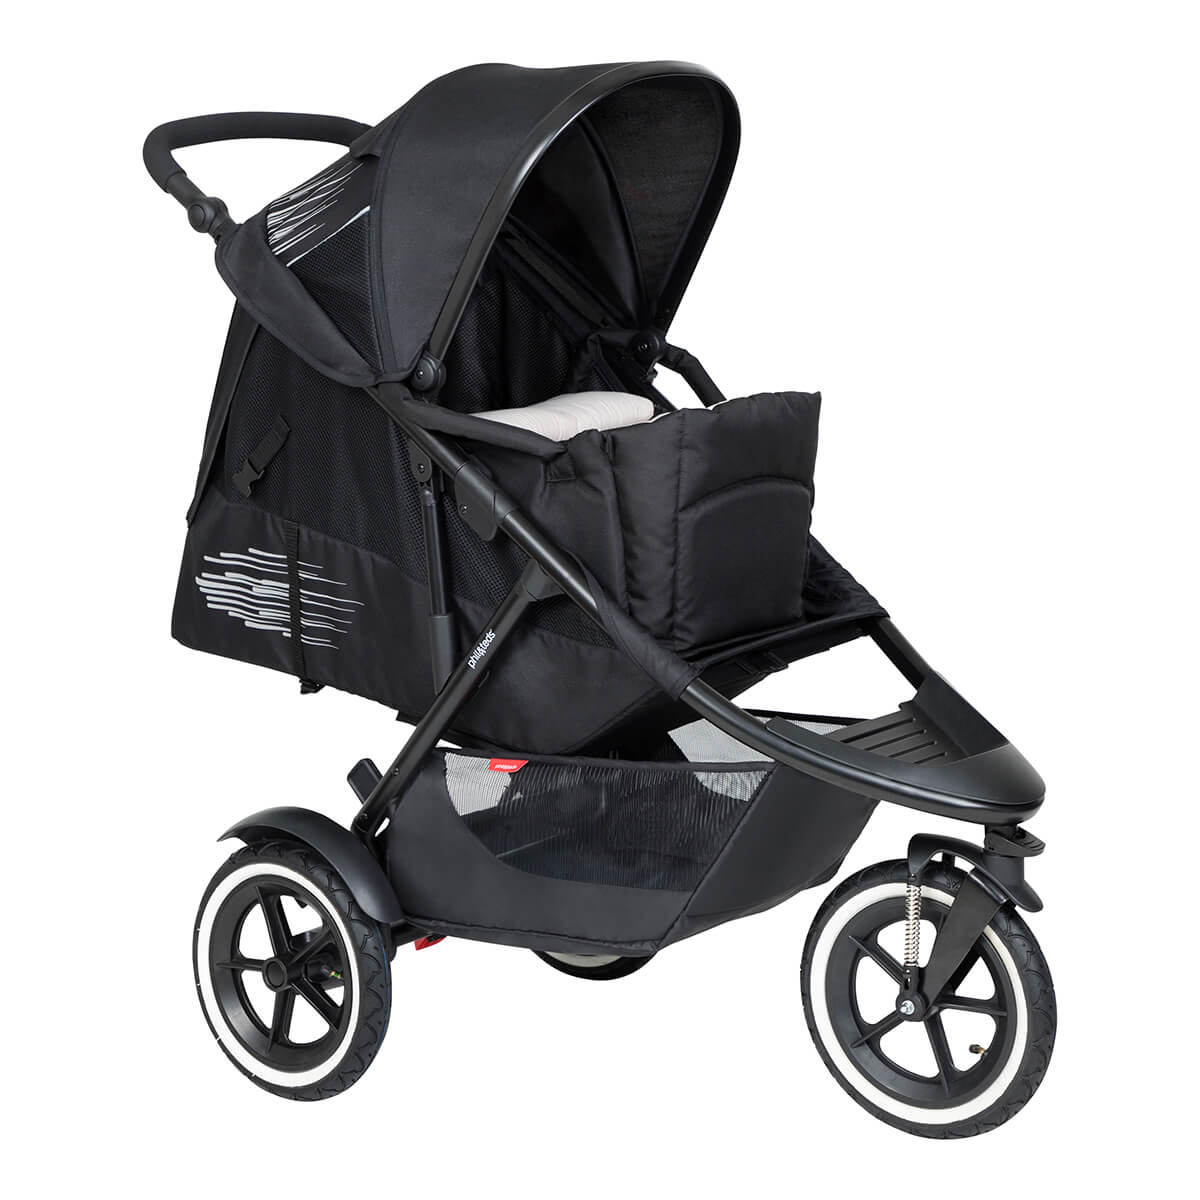 https://cdn.accentuate.io/4509526851672/19272668119128/philteds-sport-buggy-with-cocoon-full-recline-v1626484308798.jpg?1200x1200